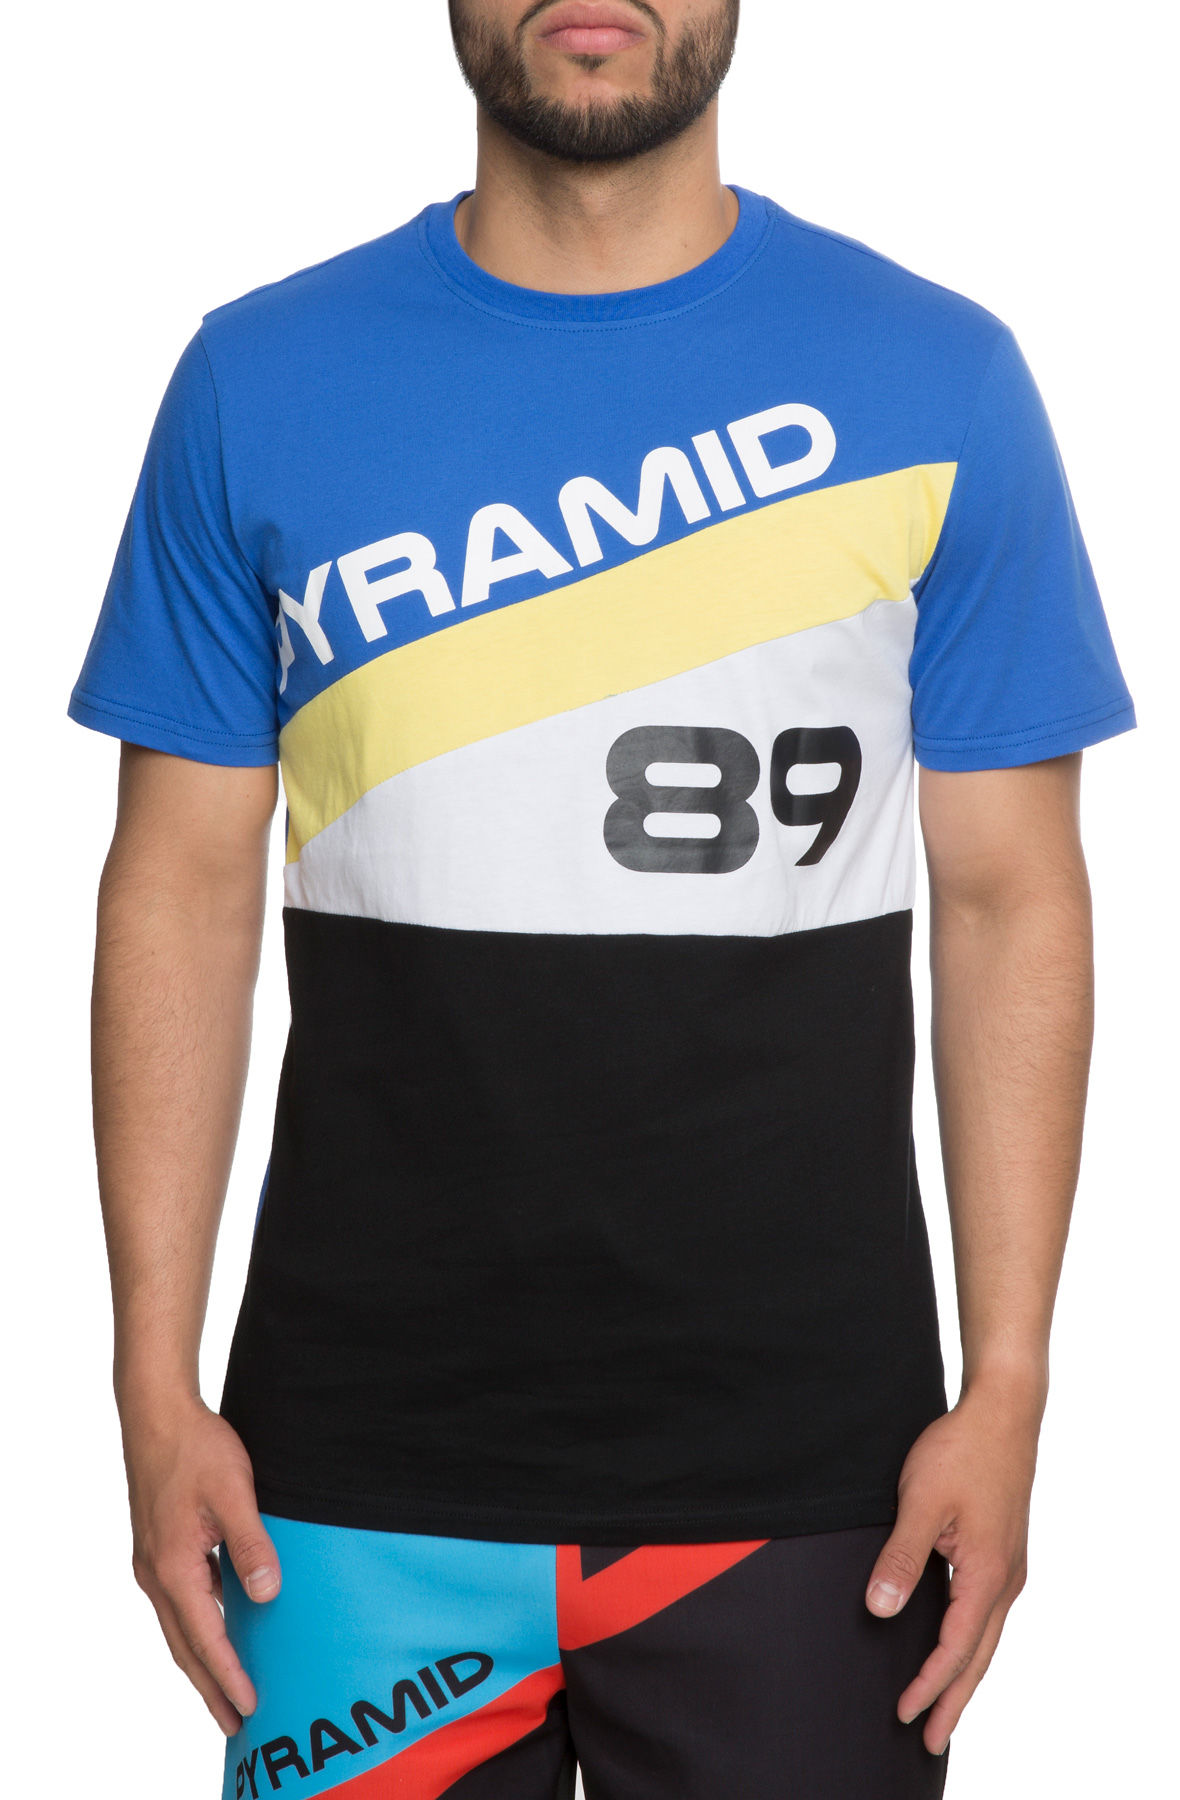 Image of The Pyramid 89 Shirt in White